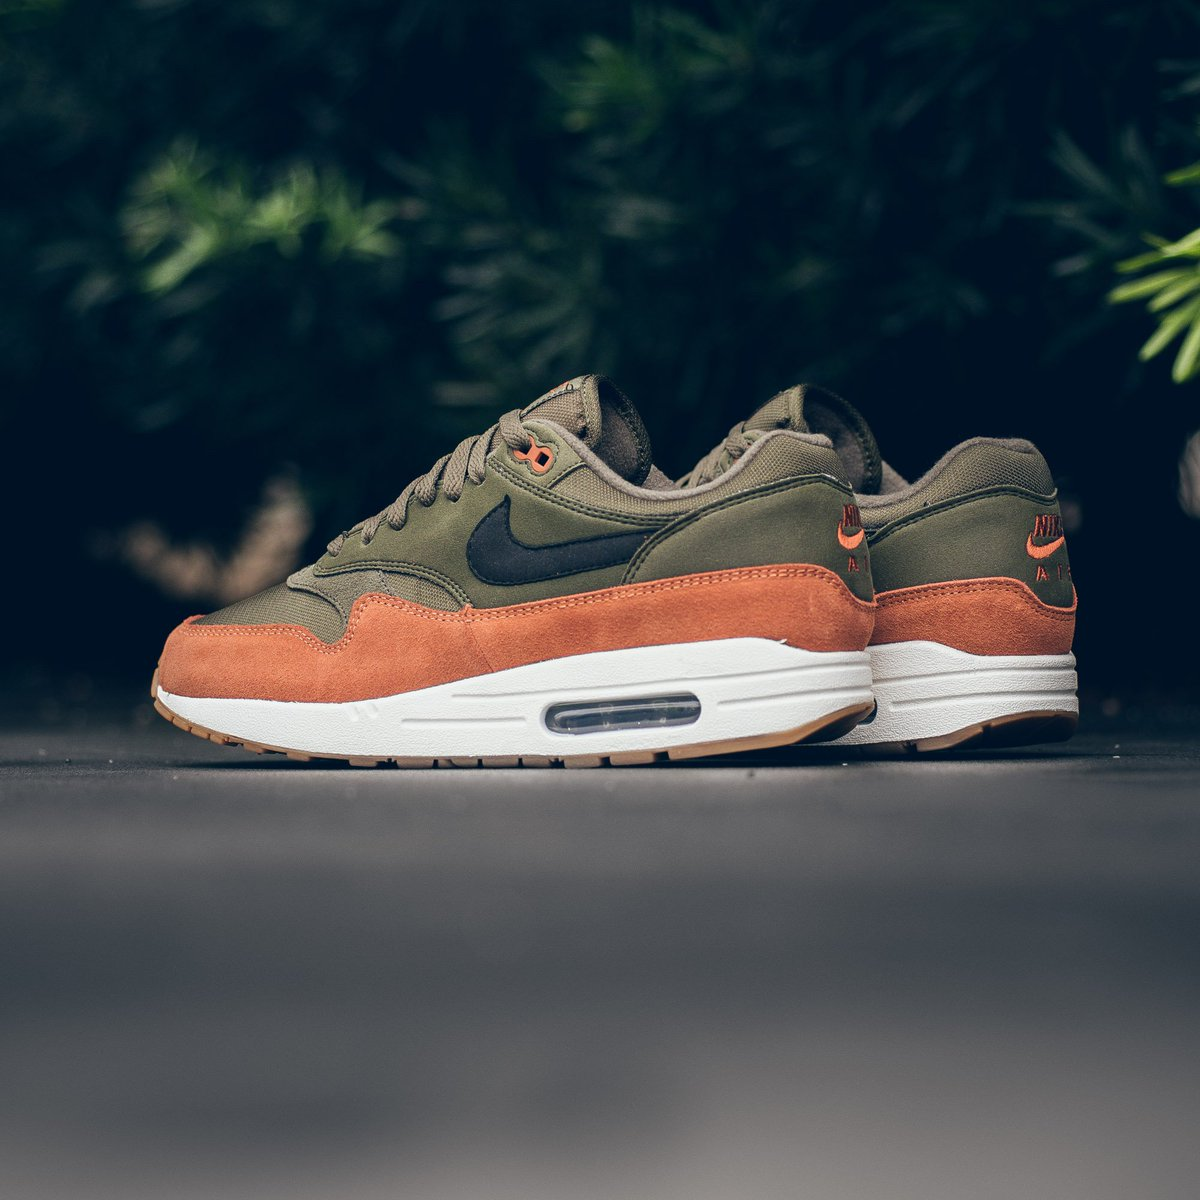 best service 7007a 7b5c4 Now Available    Nike Air Max 1 - Olive Canvas Black Dark Russet     https   sneakerpolitics.com products nike-air-max-1-olive-canvas-black-dark- russet … ...